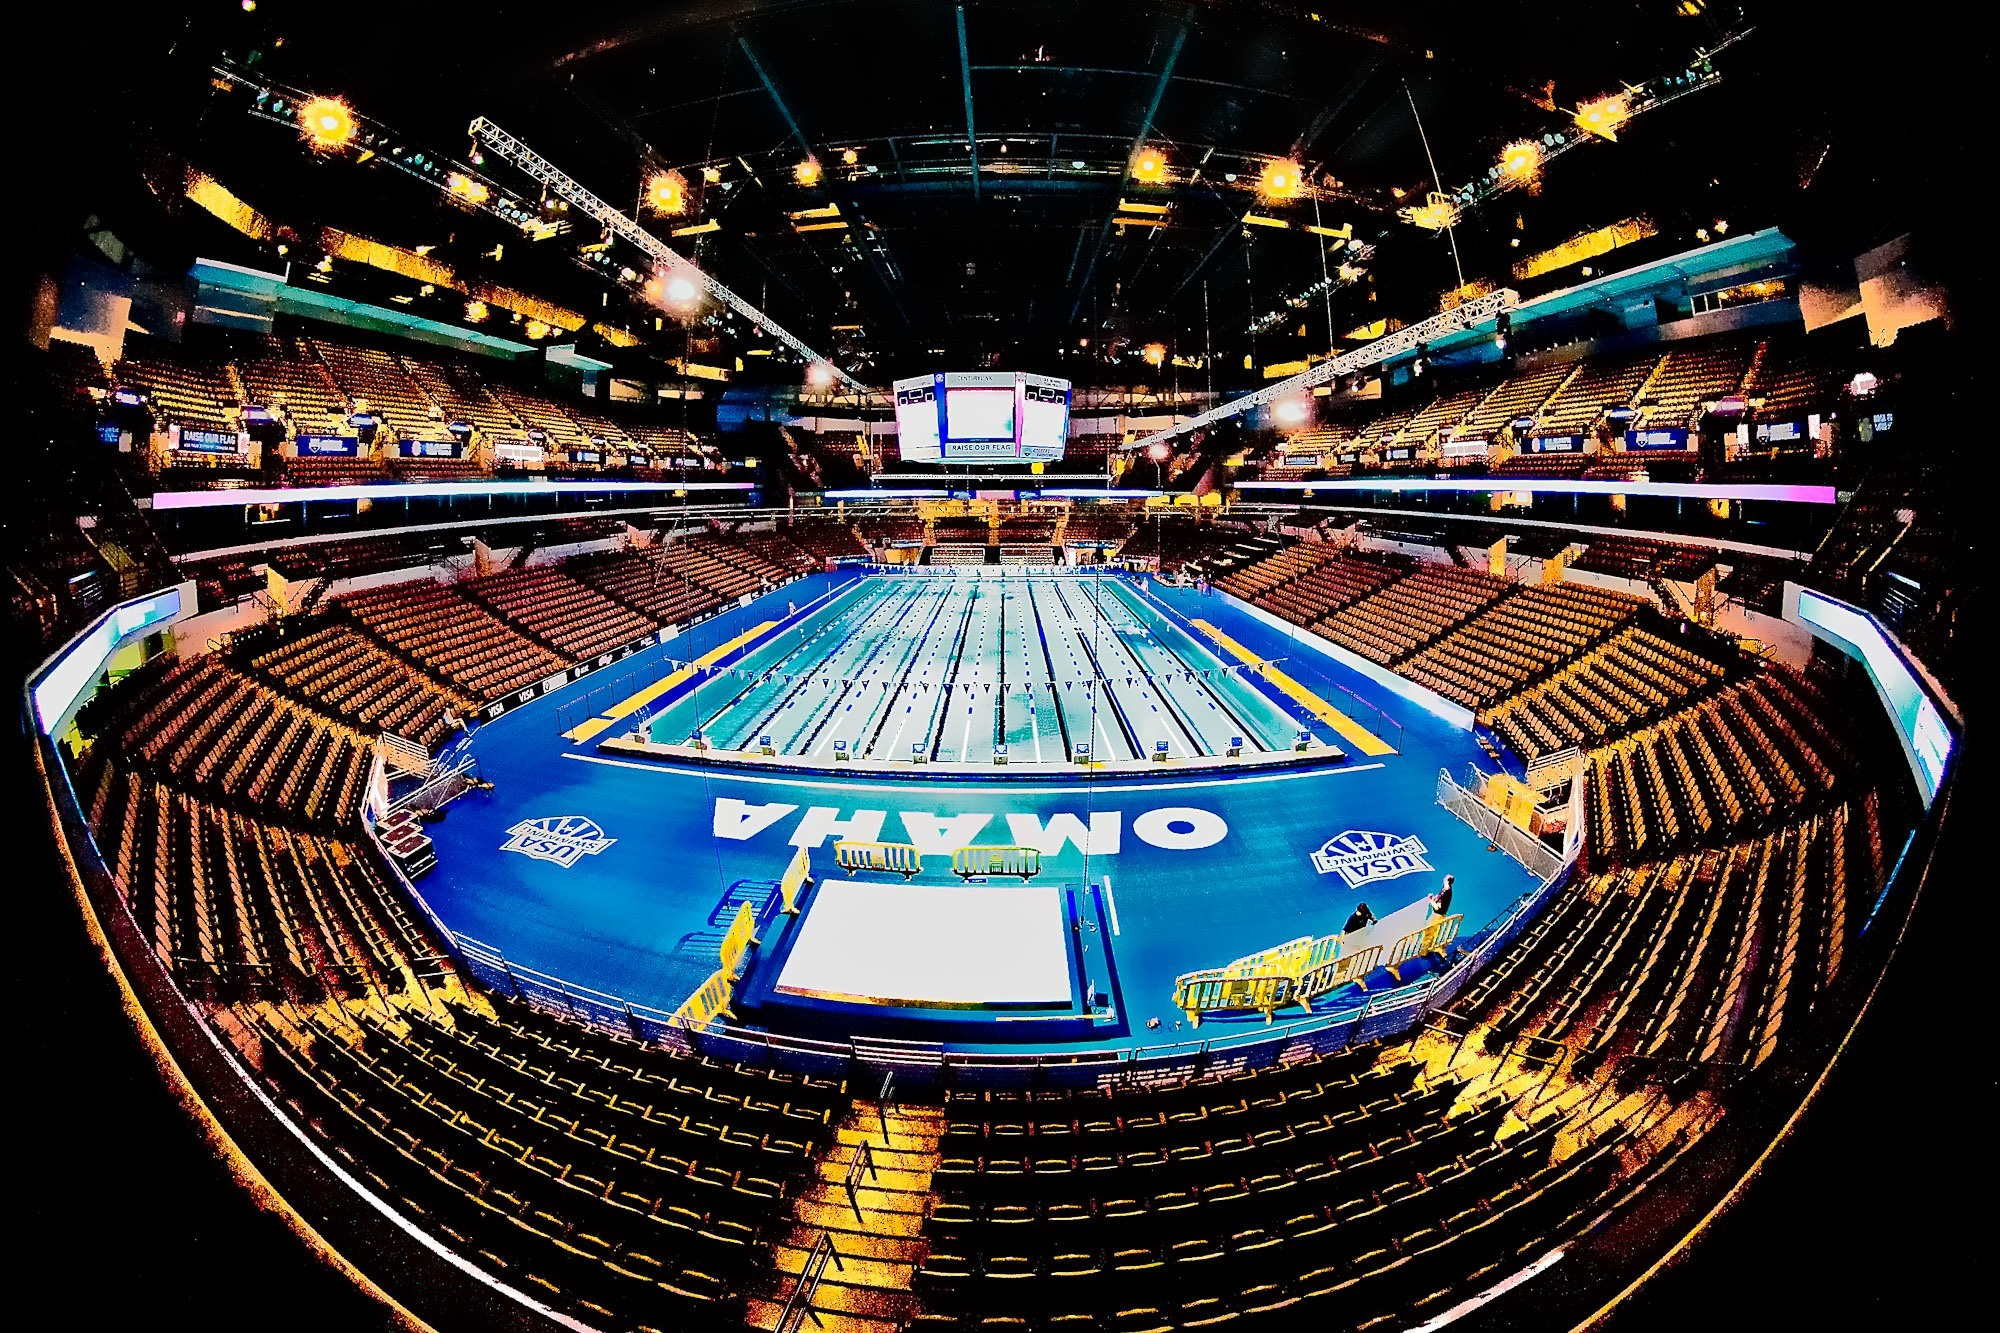 the 7 wonders of the swimming pool world - Olympic Swimming Pool 2013